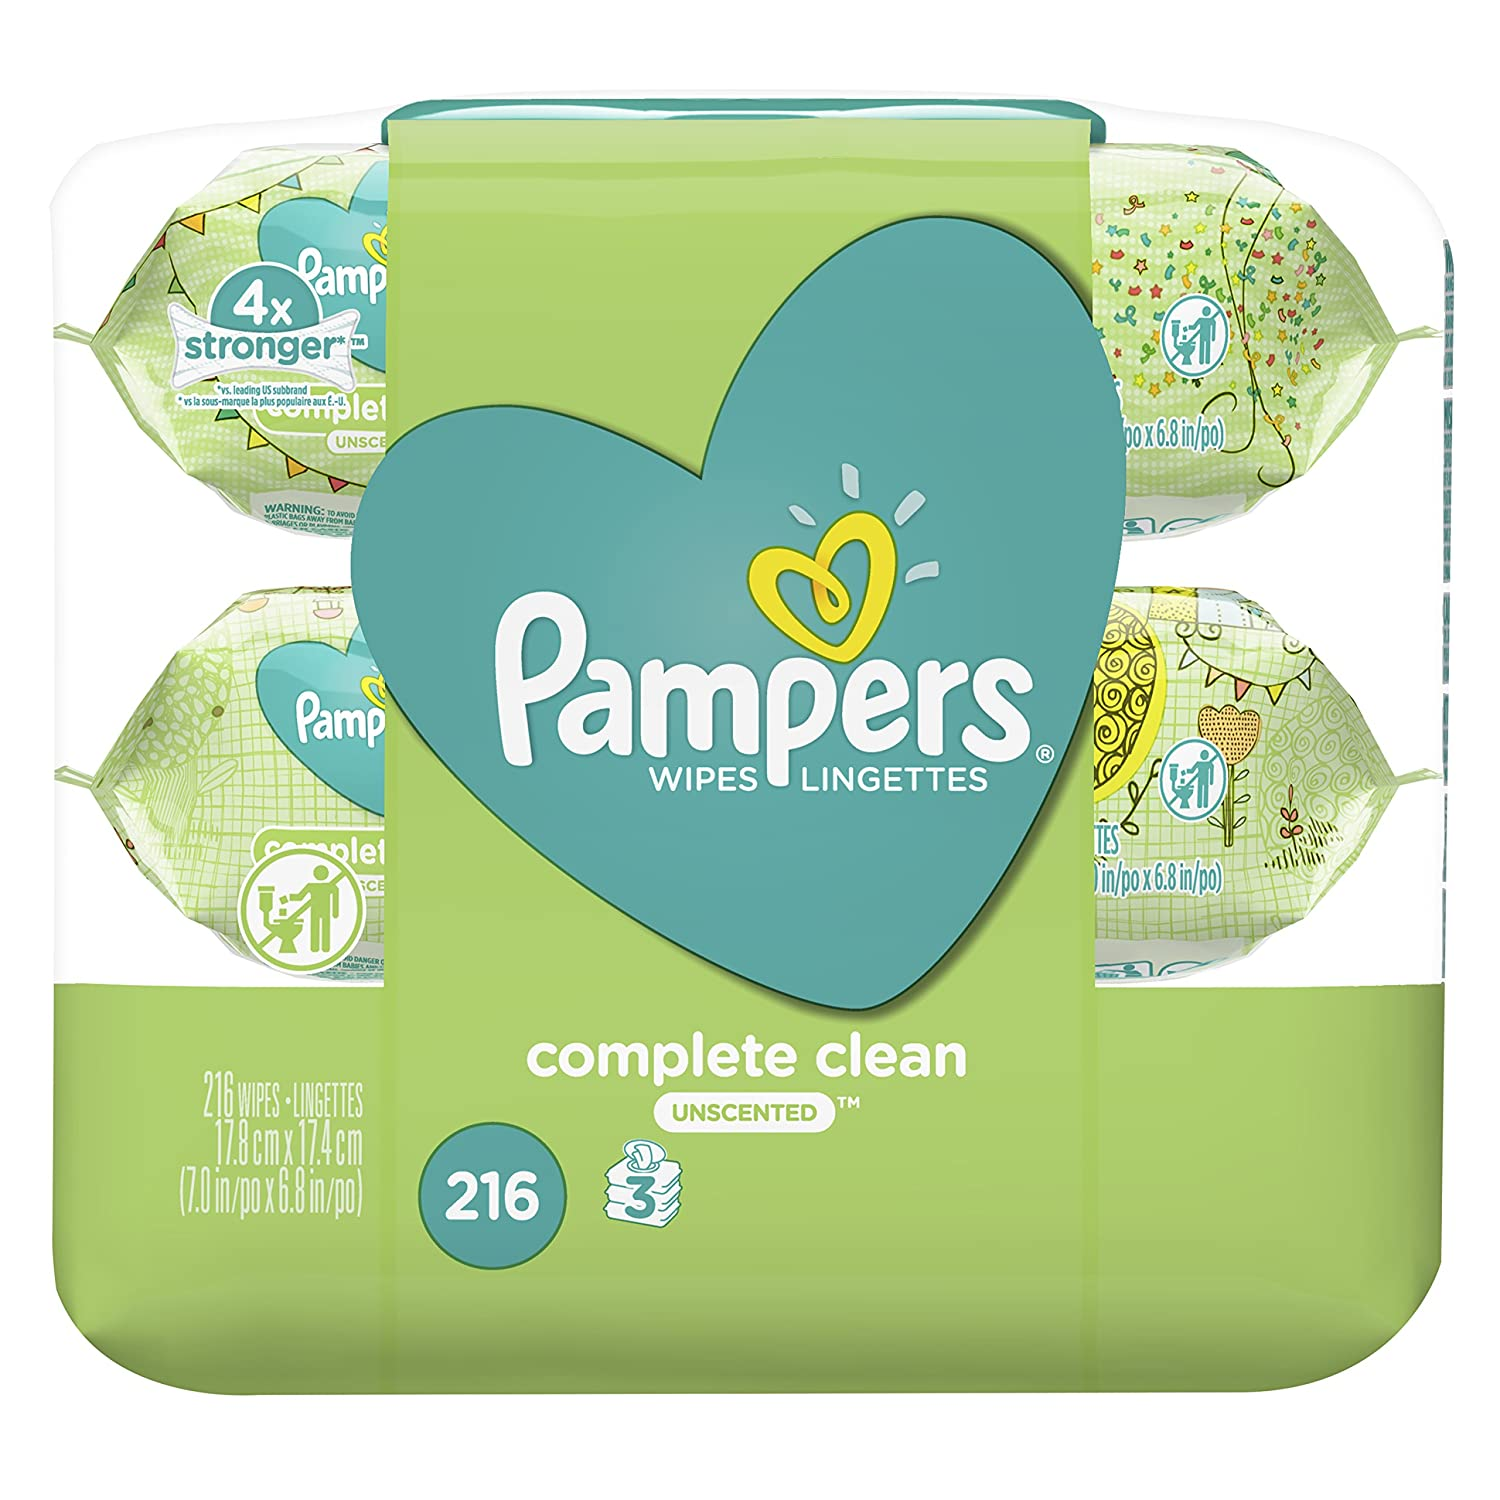 Pampers Baby Wipes, Natural Clean UNSCENTED, Pop-Top Travel Pack, 64 Count (Packaging May Vary) -5686